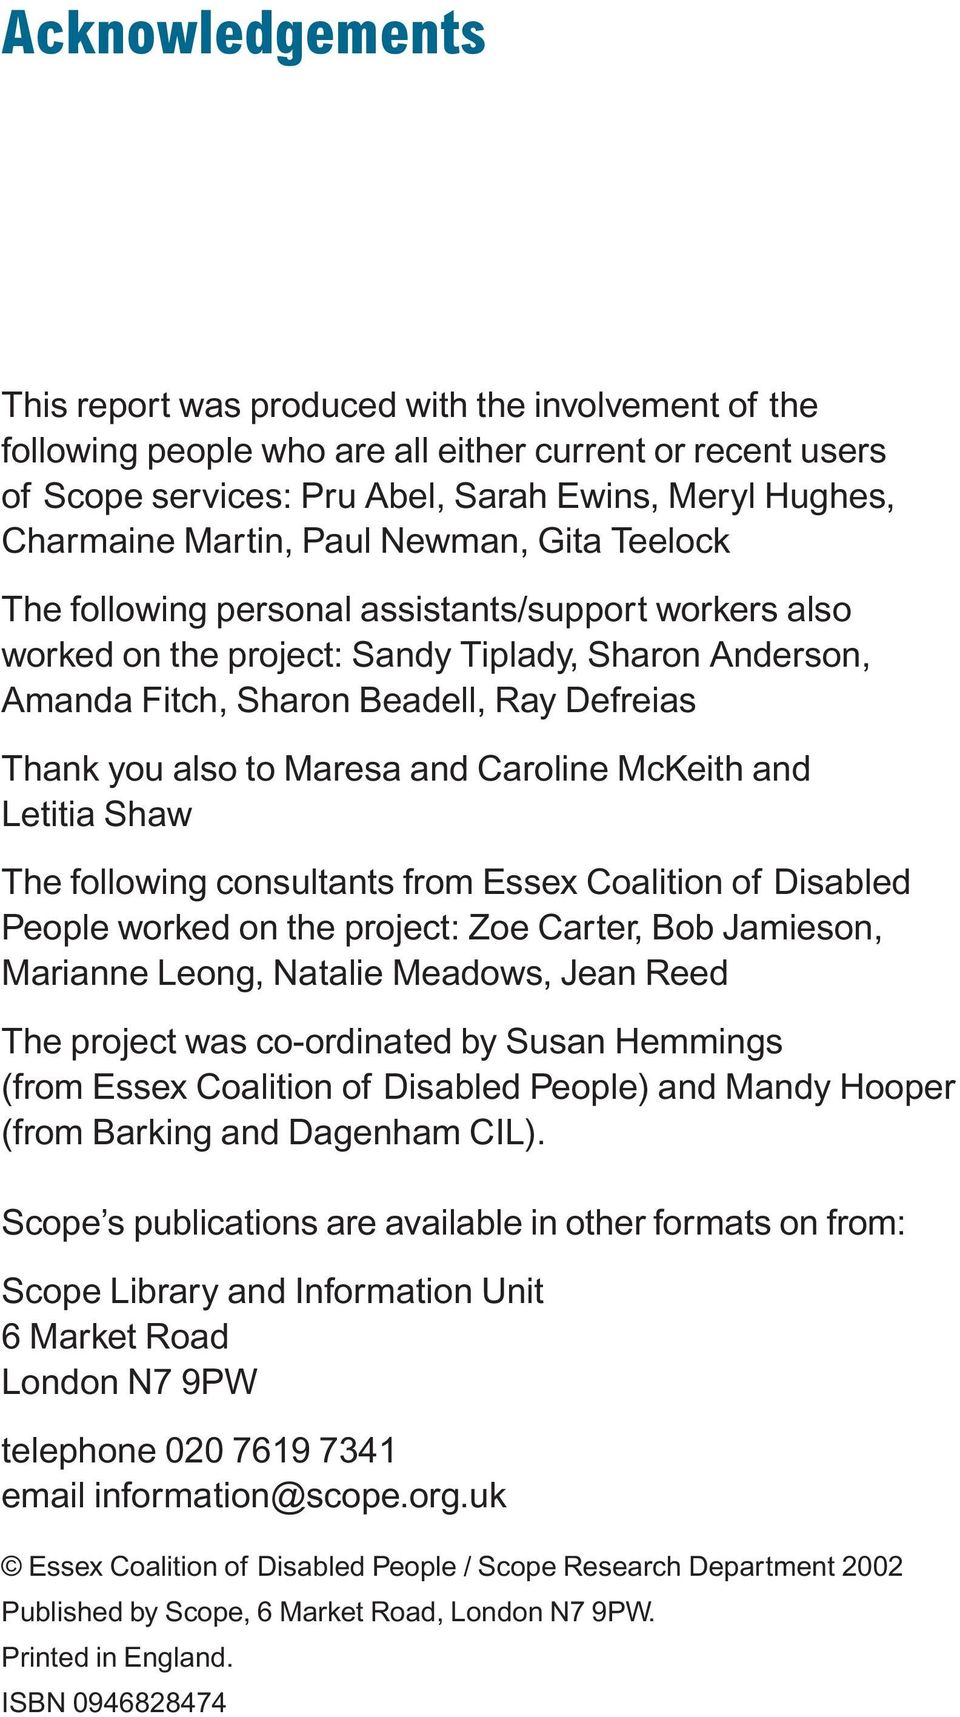 also to Maresa and Caroline McKeith and Letitia Shaw The following consultants from Essex Coalition of Disabled People worked on the project: Zoe Carter, Bob Jamieson, Marianne Leong, Natalie